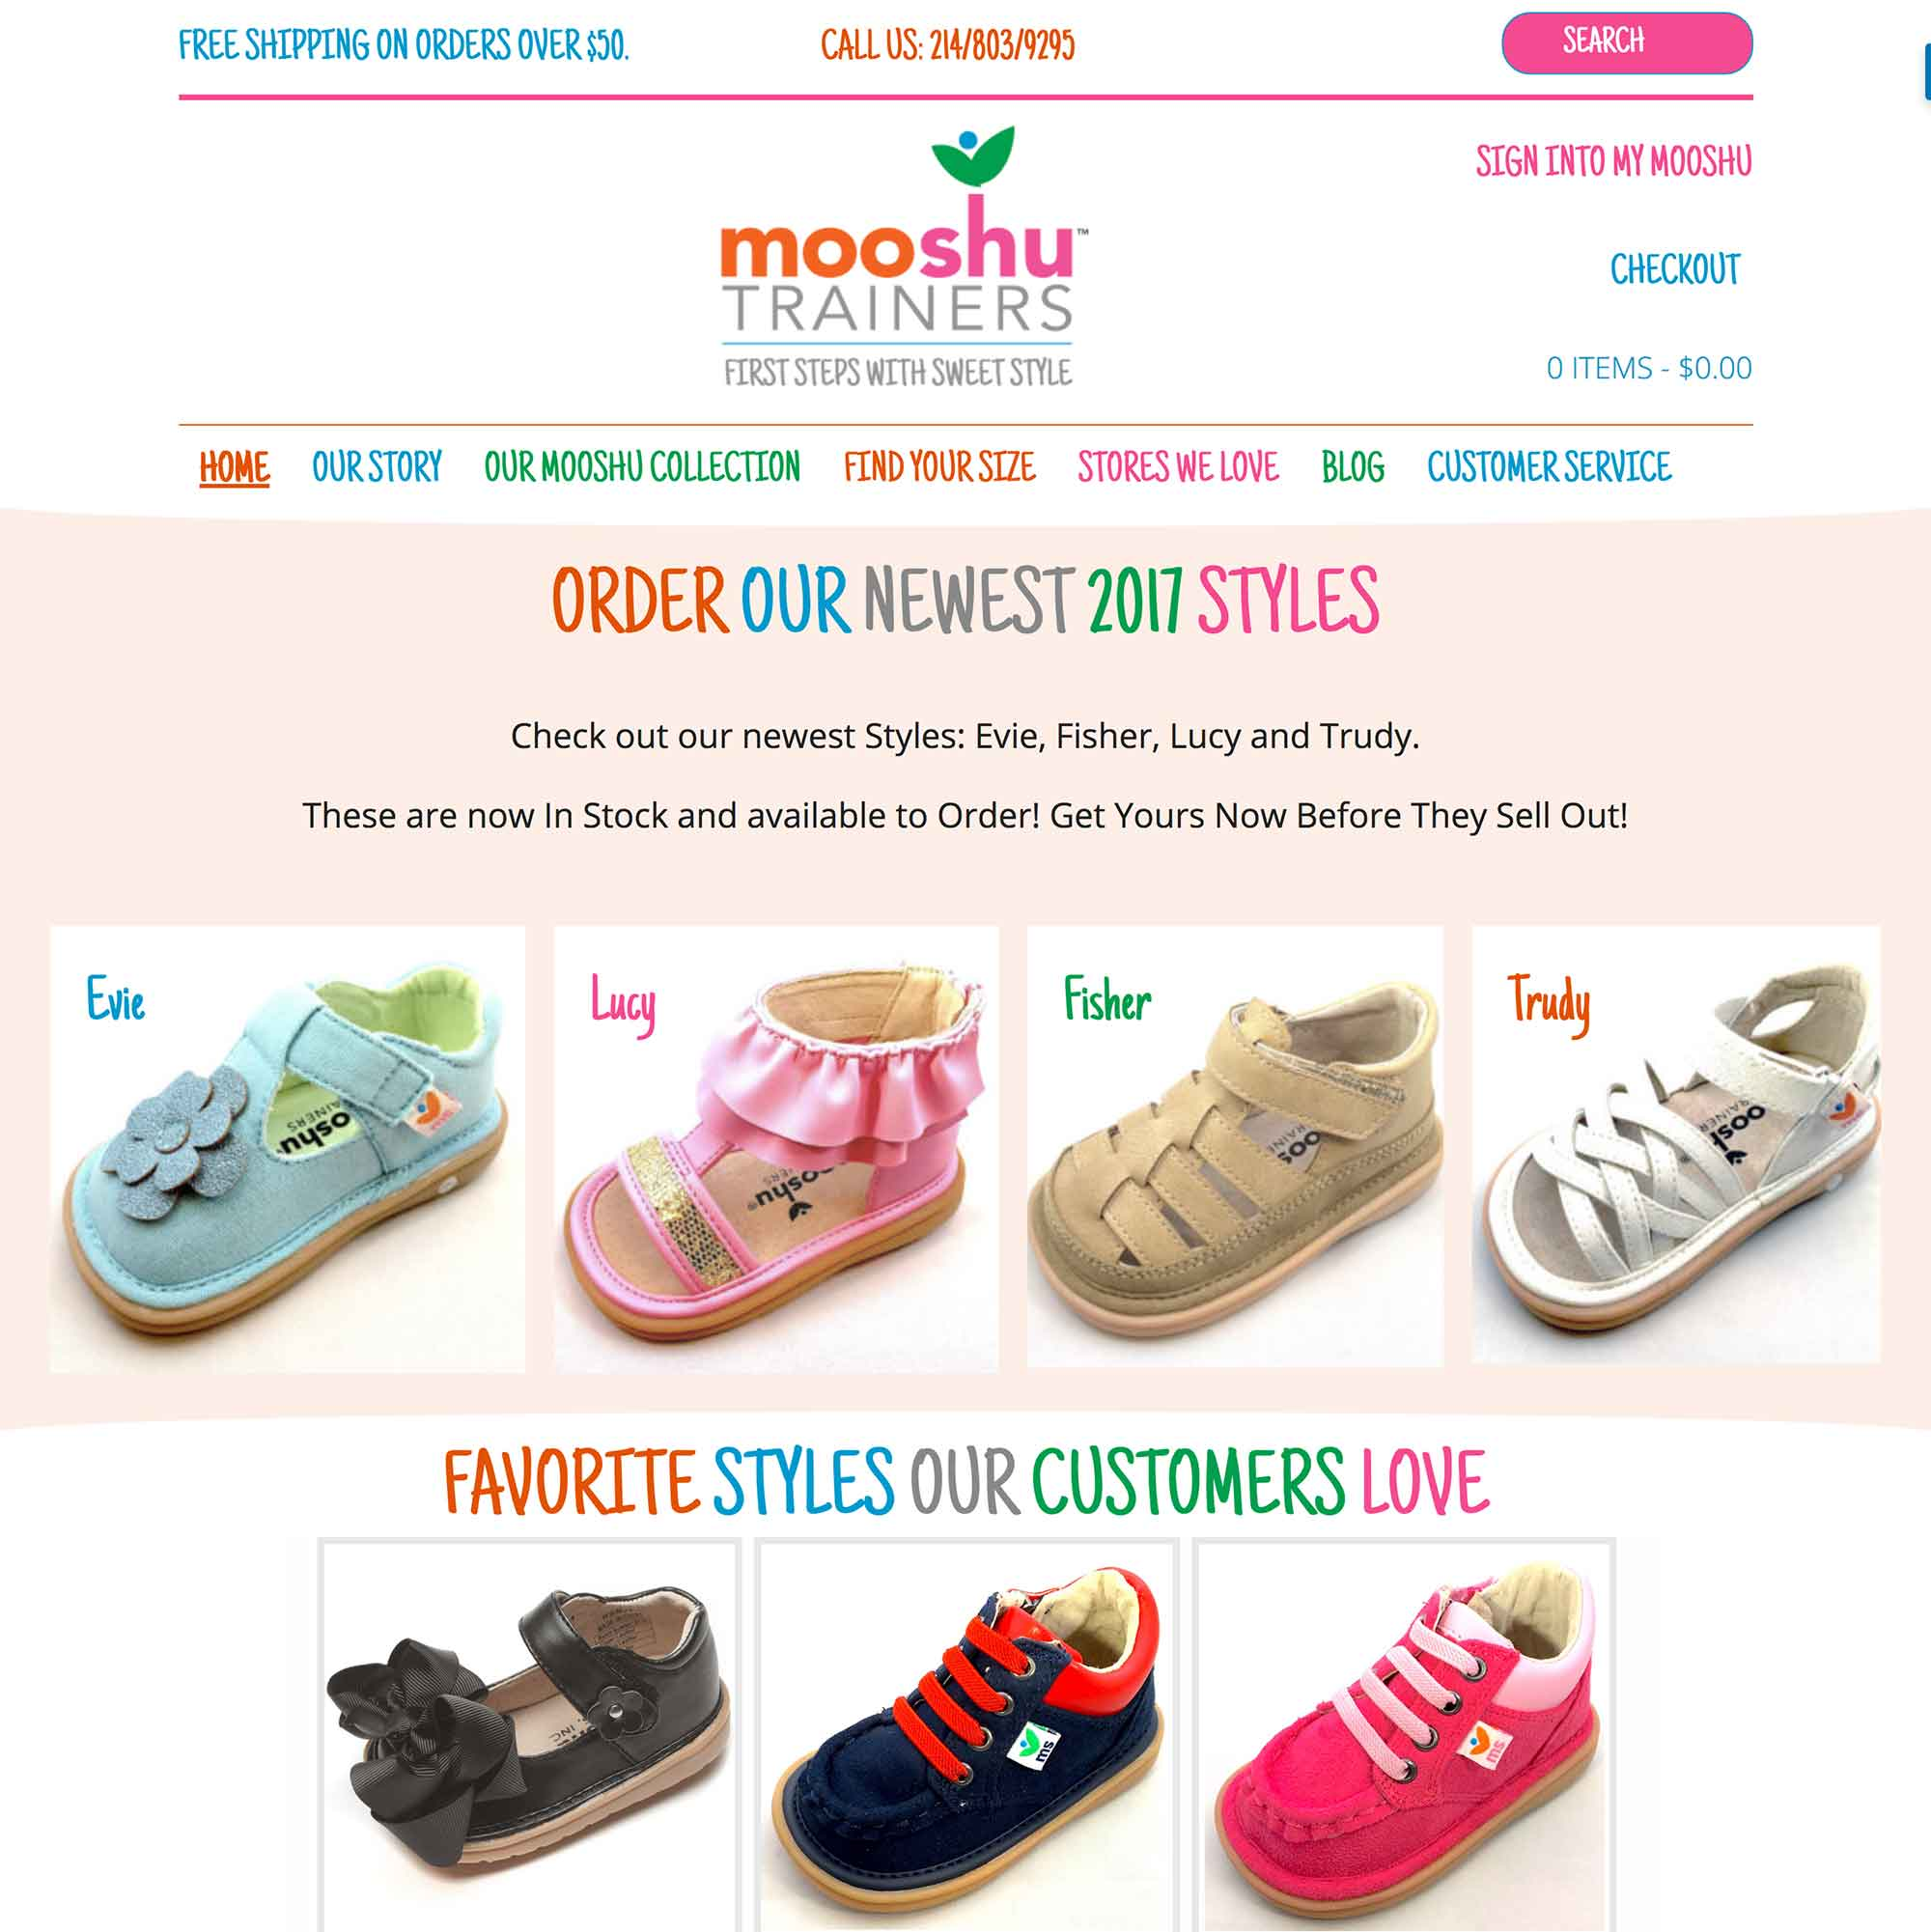 eCommerce Website for Mooshu Trainers